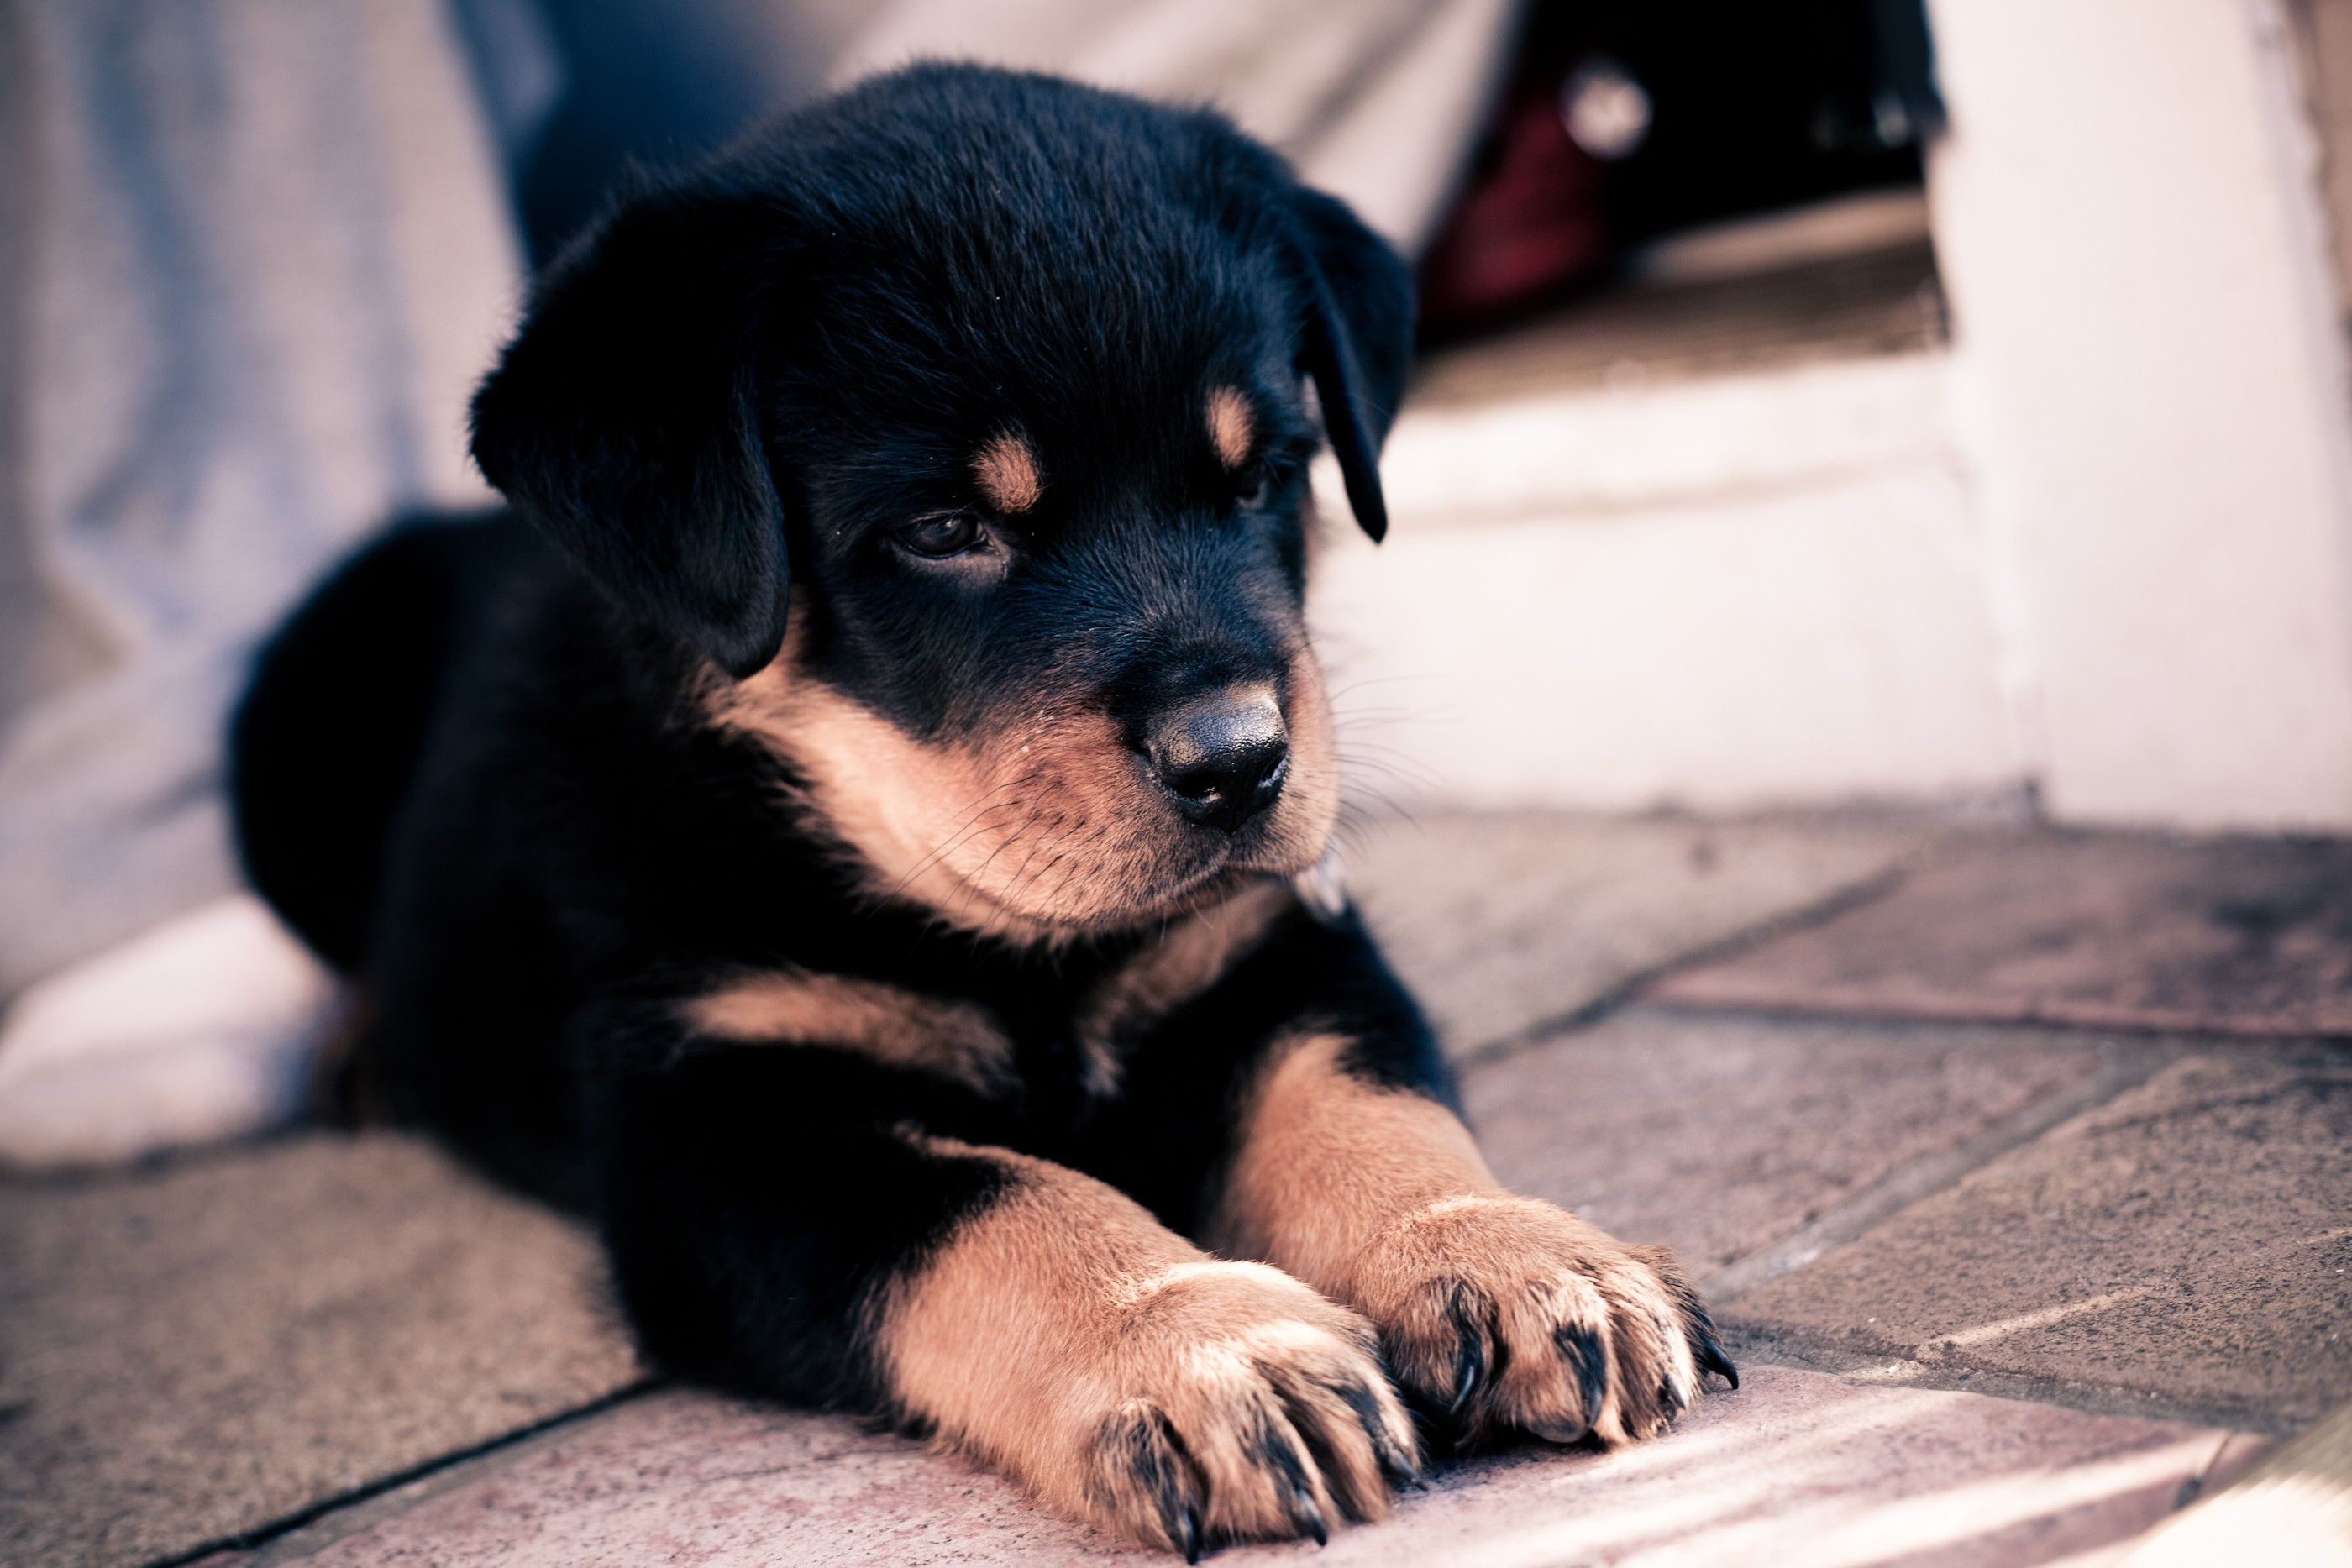 73171 Screensavers and Wallpapers Puppy for phone. Download Dog, Animals, Muzzle, Puppy, Paws, Rottweiler pictures for free